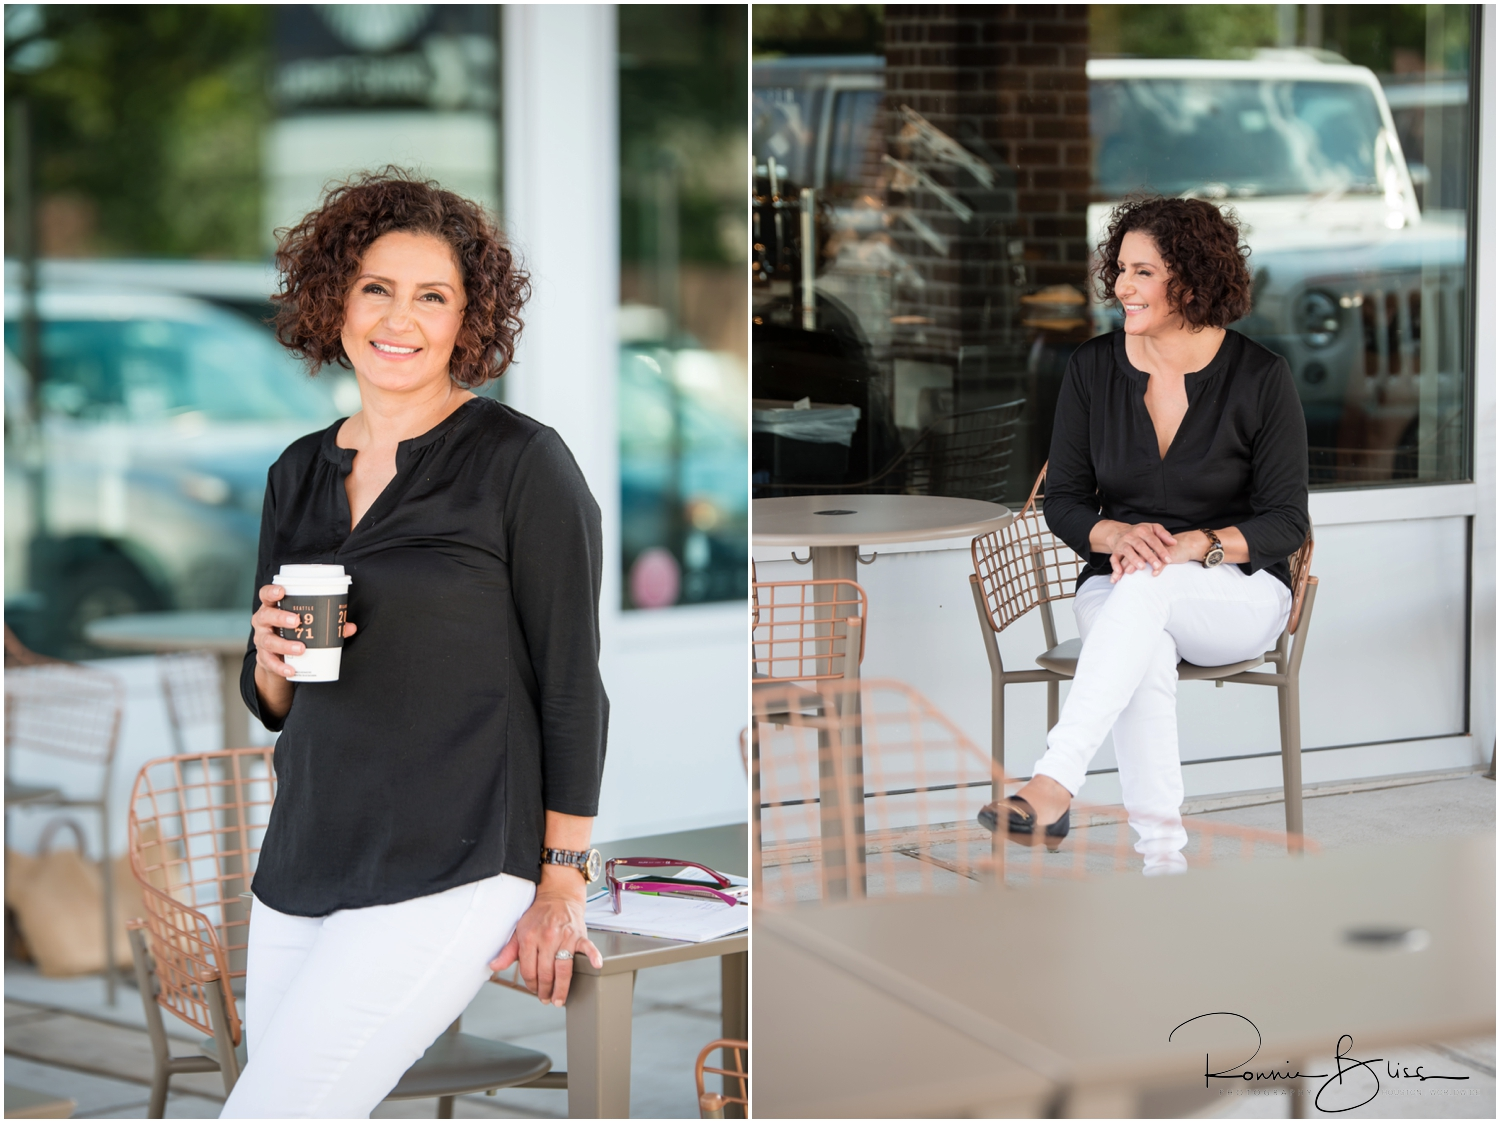 Houston-Personal-Branding-Session-Ronnie-Bliss-Photography_0005.jpg